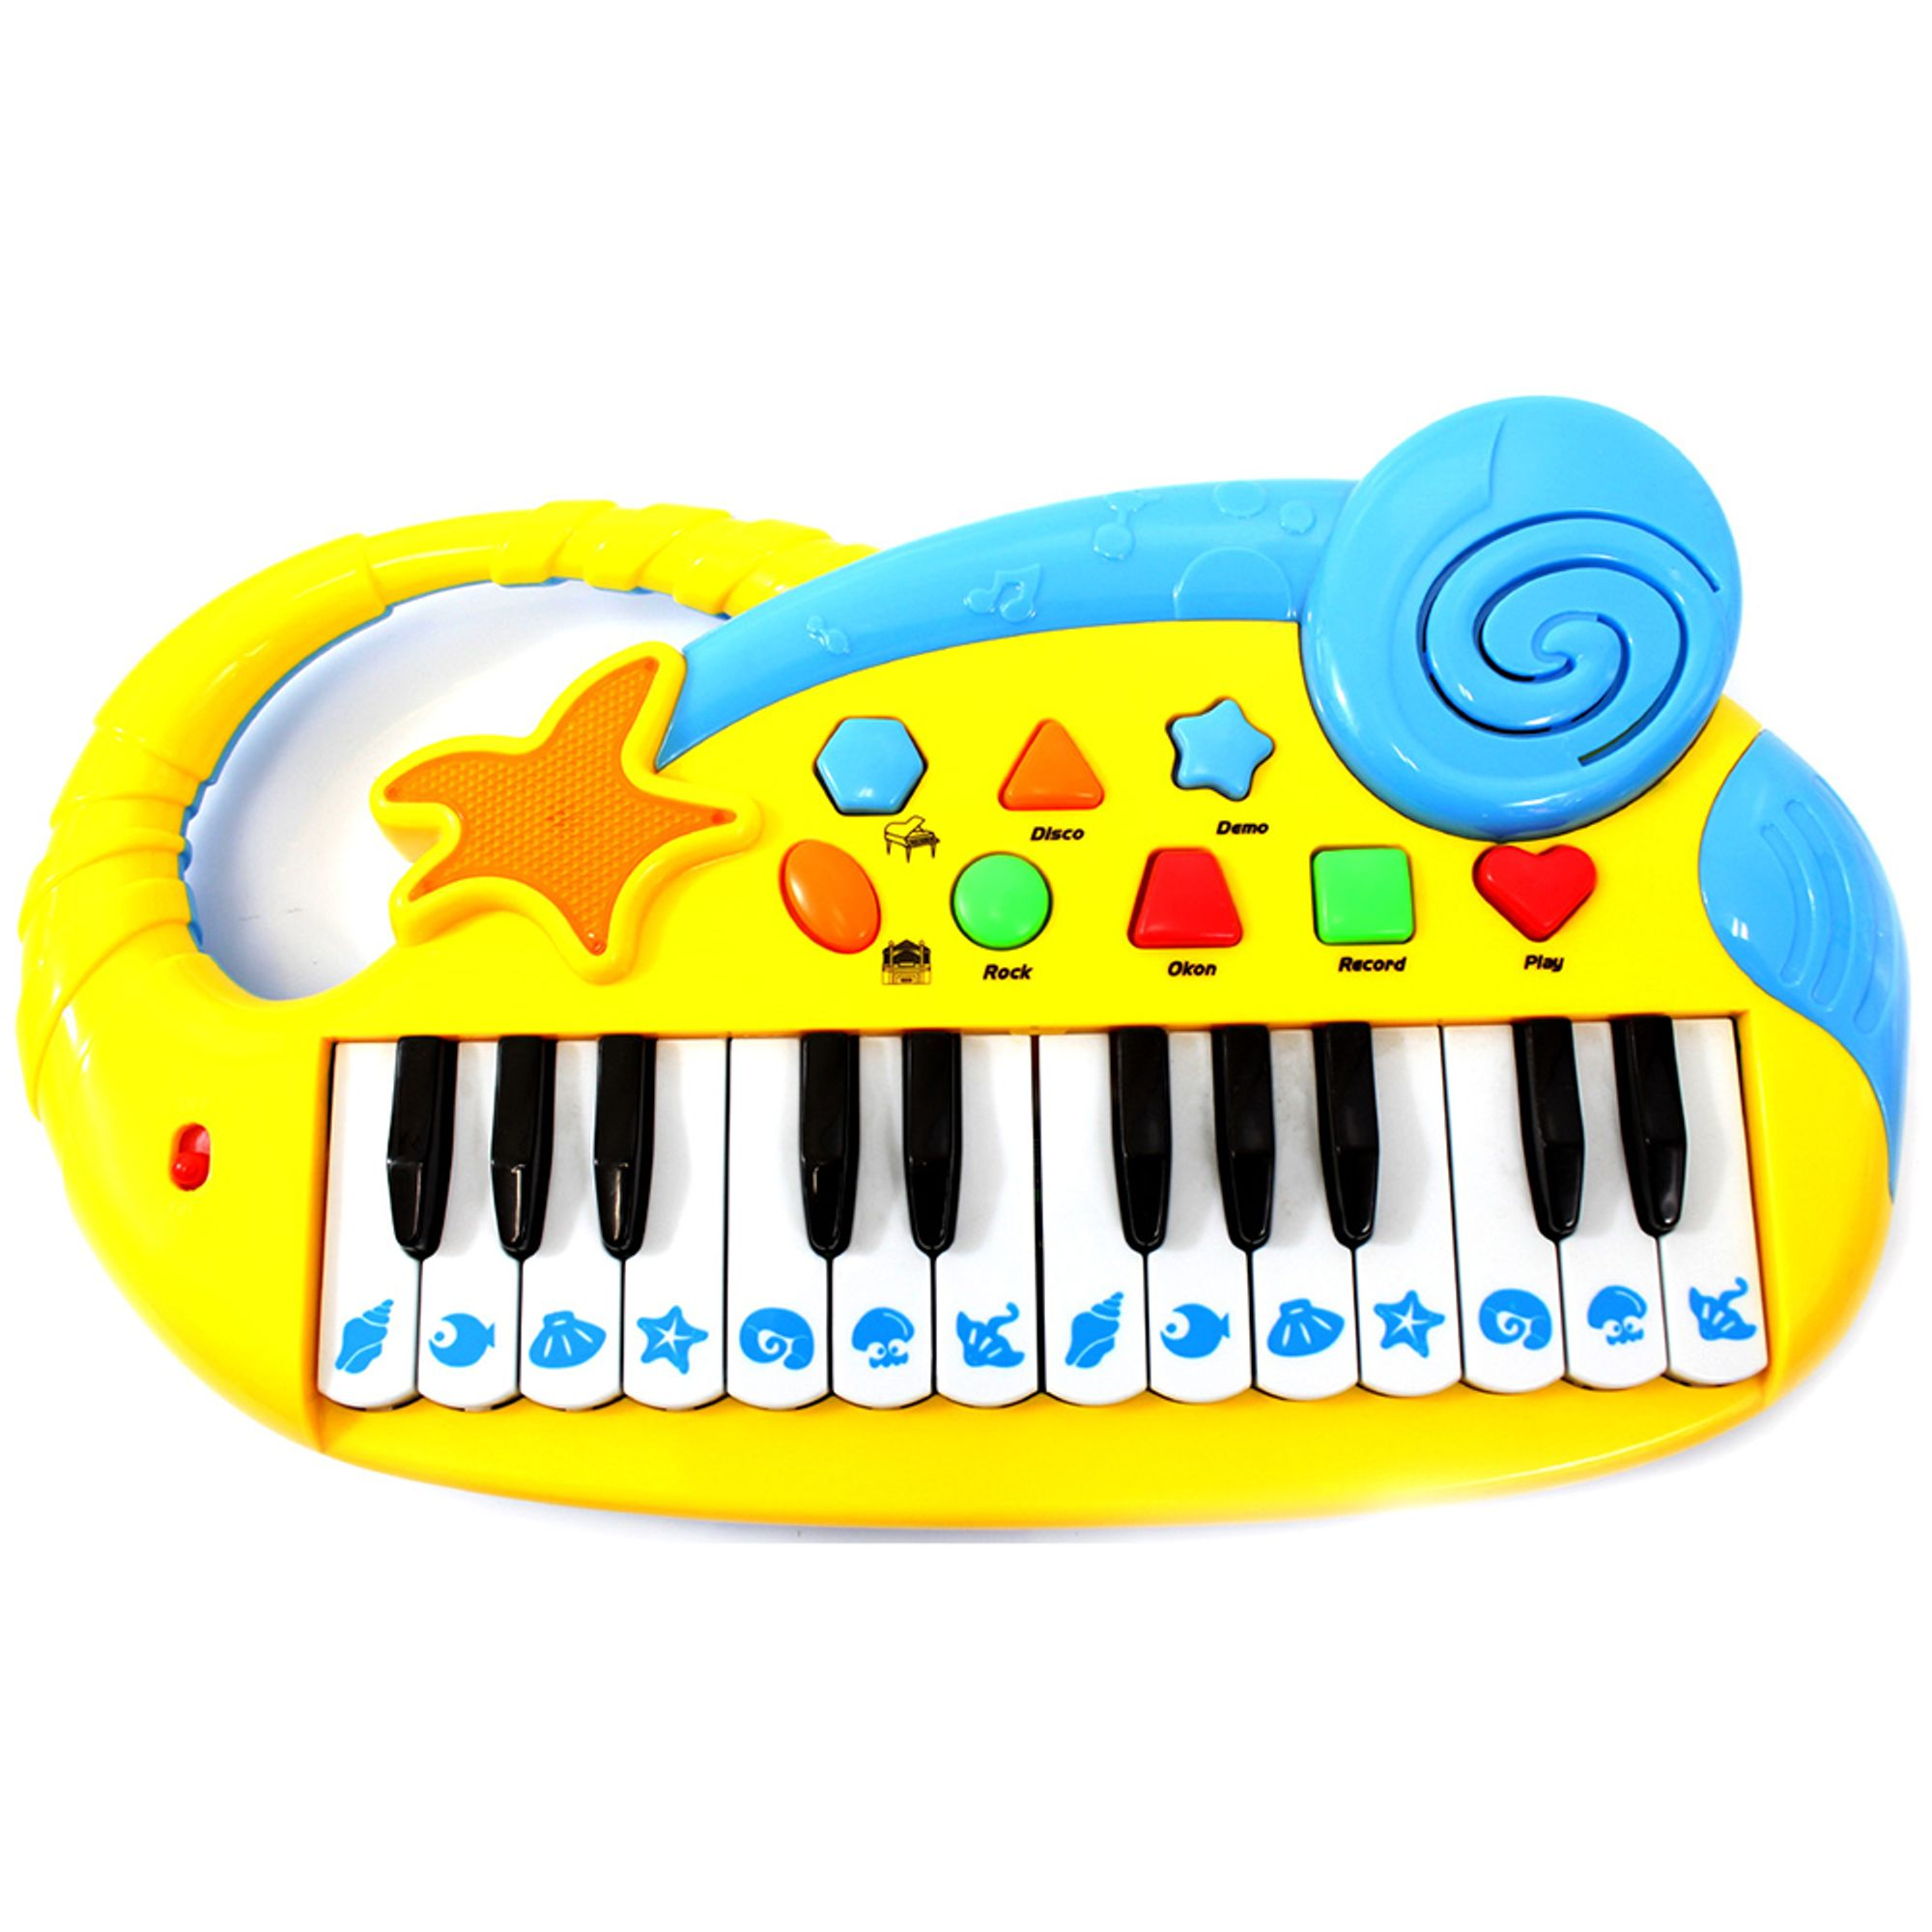 Musical Fun Electronic Piano Keyboard for Kids with Record and Playback - Yellow